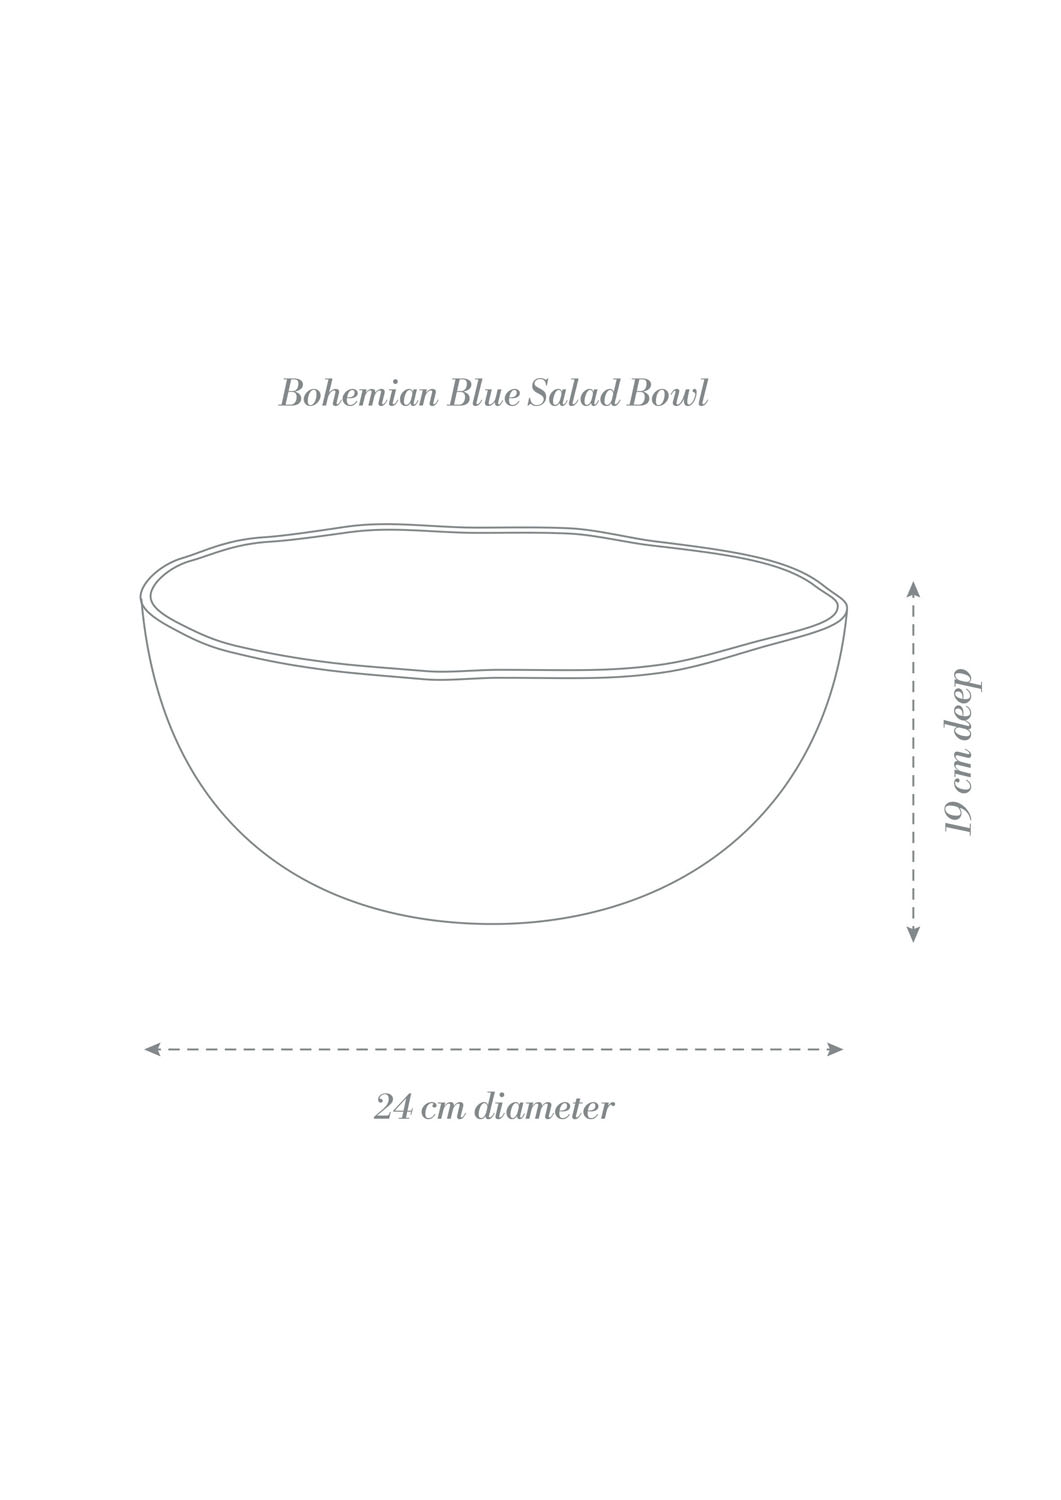 Bohemian Blue Dinner Set Salad Bowl Product Diagram